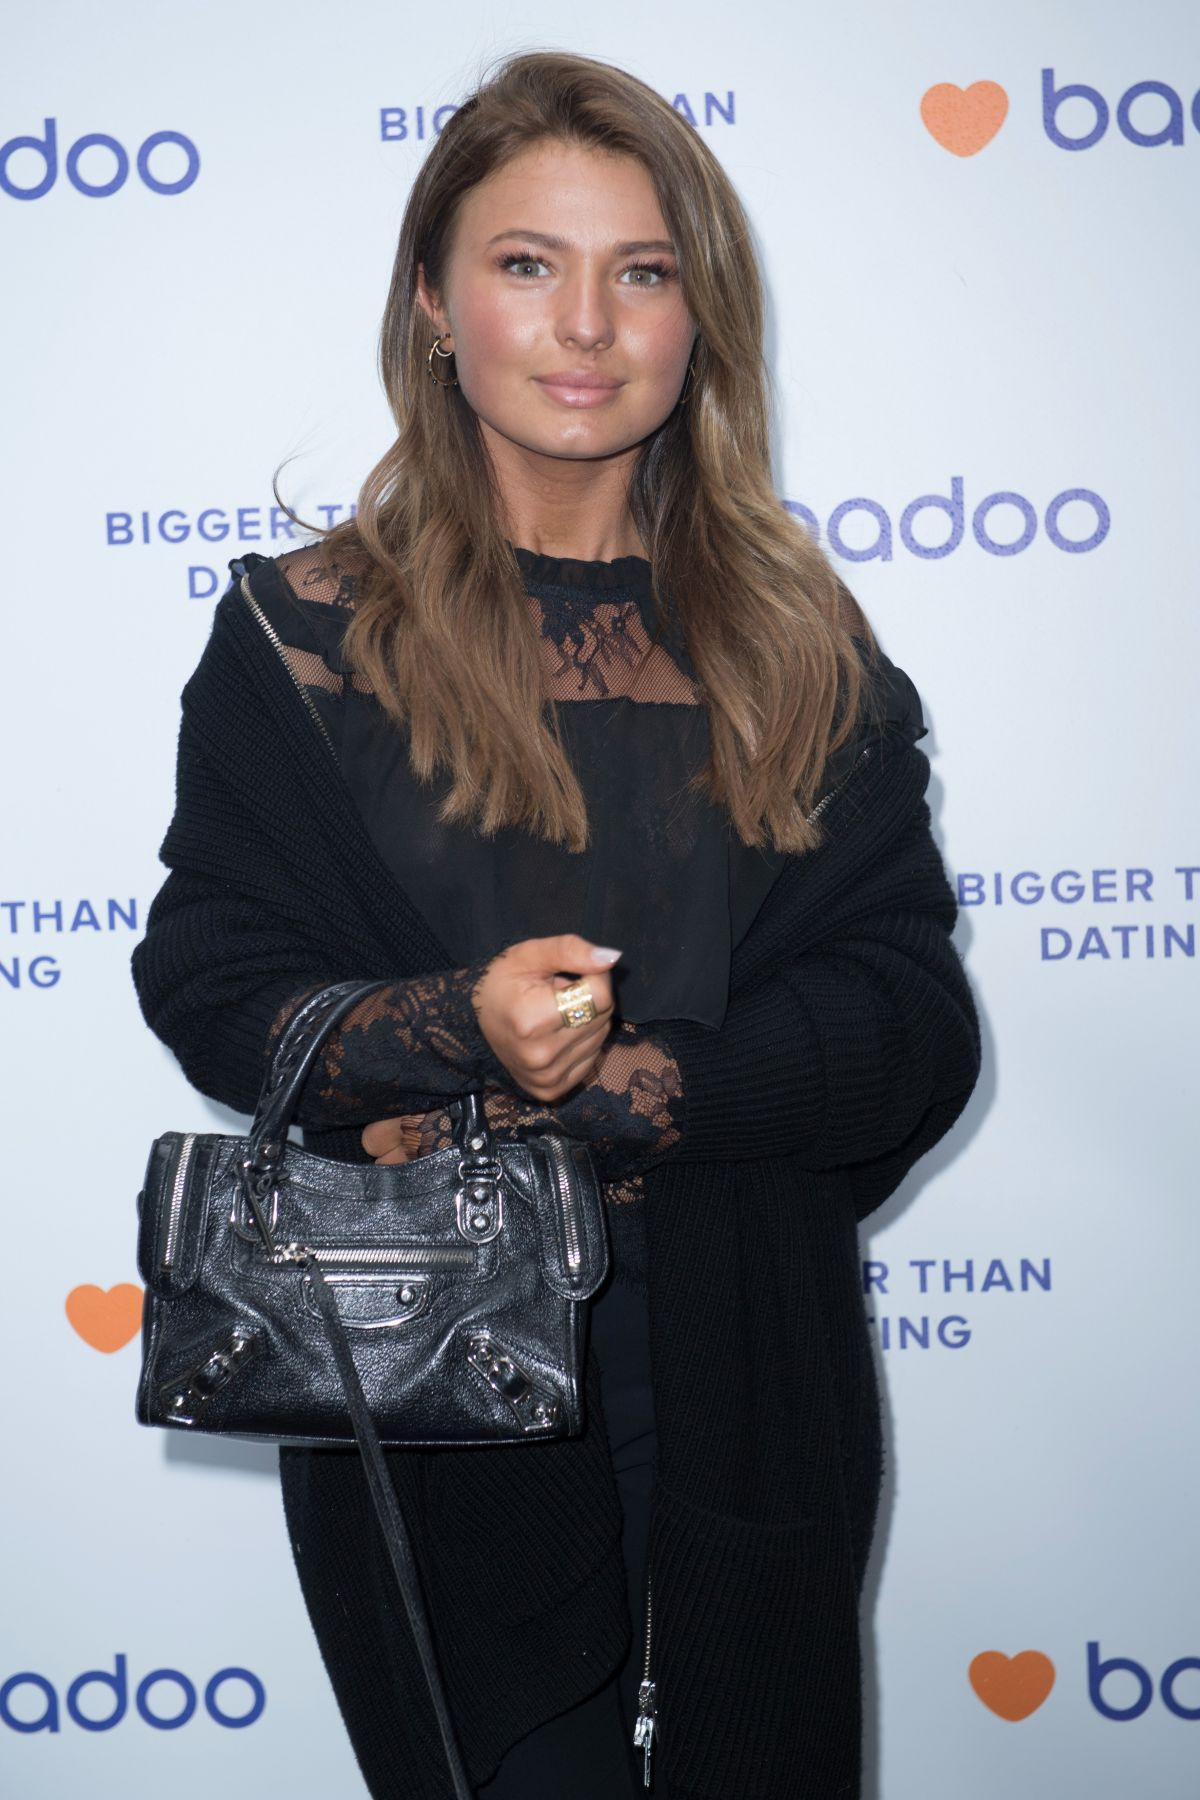 MIMI BOUCHARD at Badooyouremember VIP Event in London 09/03/2017